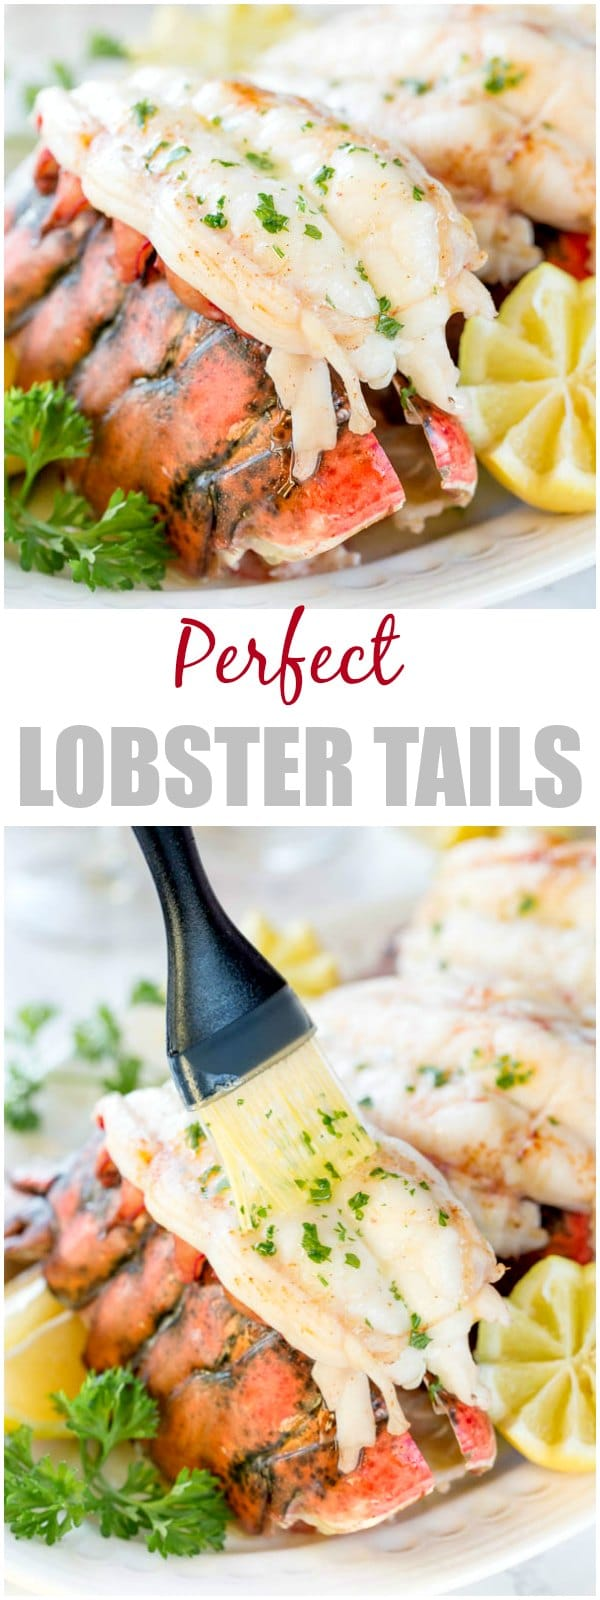 Baking these beautiful lobster tails in white wine brings out the succulent sweet flavors perfectly and yields melt-in-your-mouth tender meat every time. The easiest way to cook lobster tail! #lobstertails #bakedlobstertails